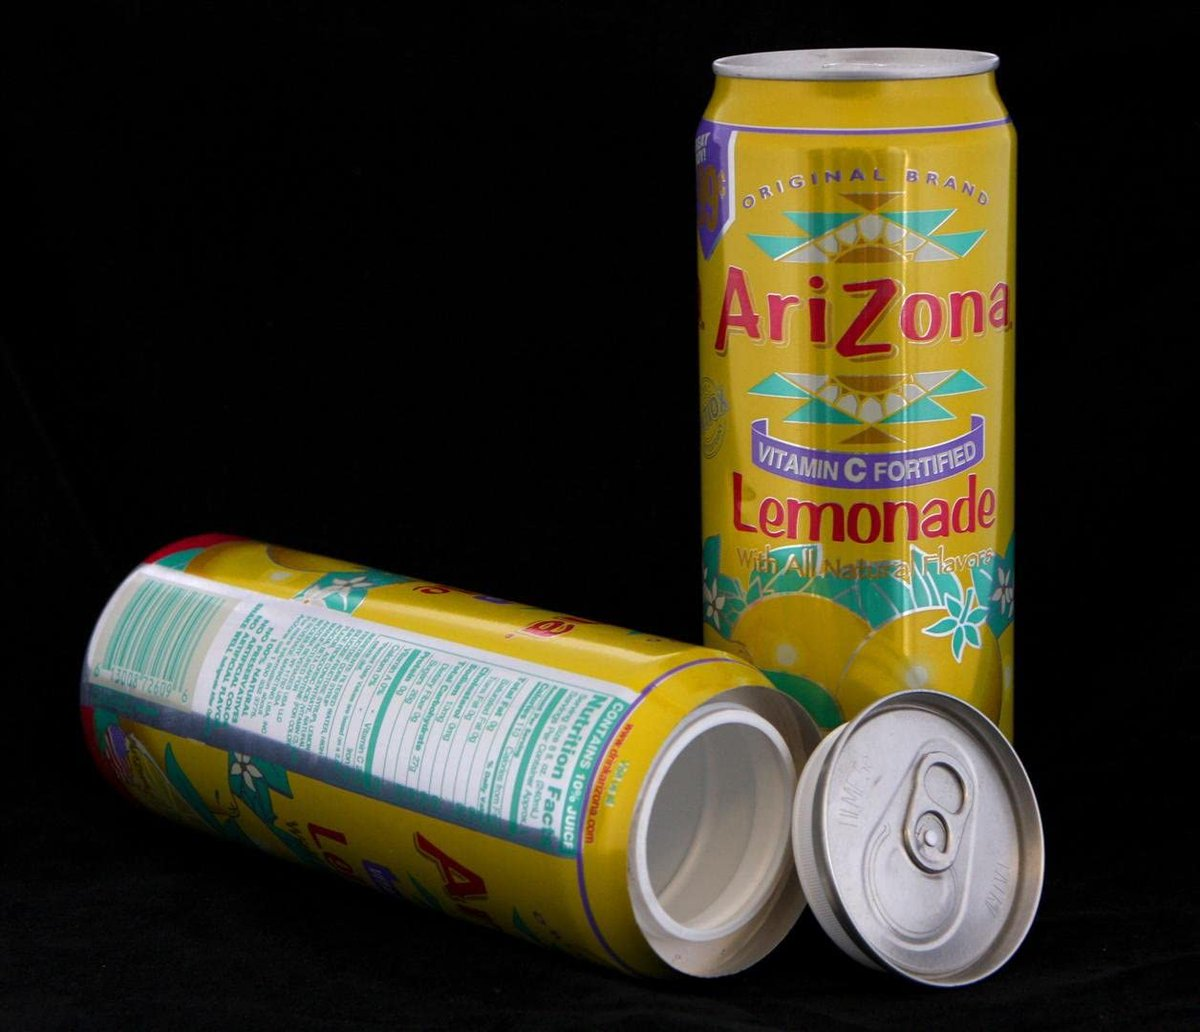 🐣. Offer Xtras! Arizona Iced Tea LEMONADE Concealment Can Diversion Safe Stash Can for $19.98 #me #home